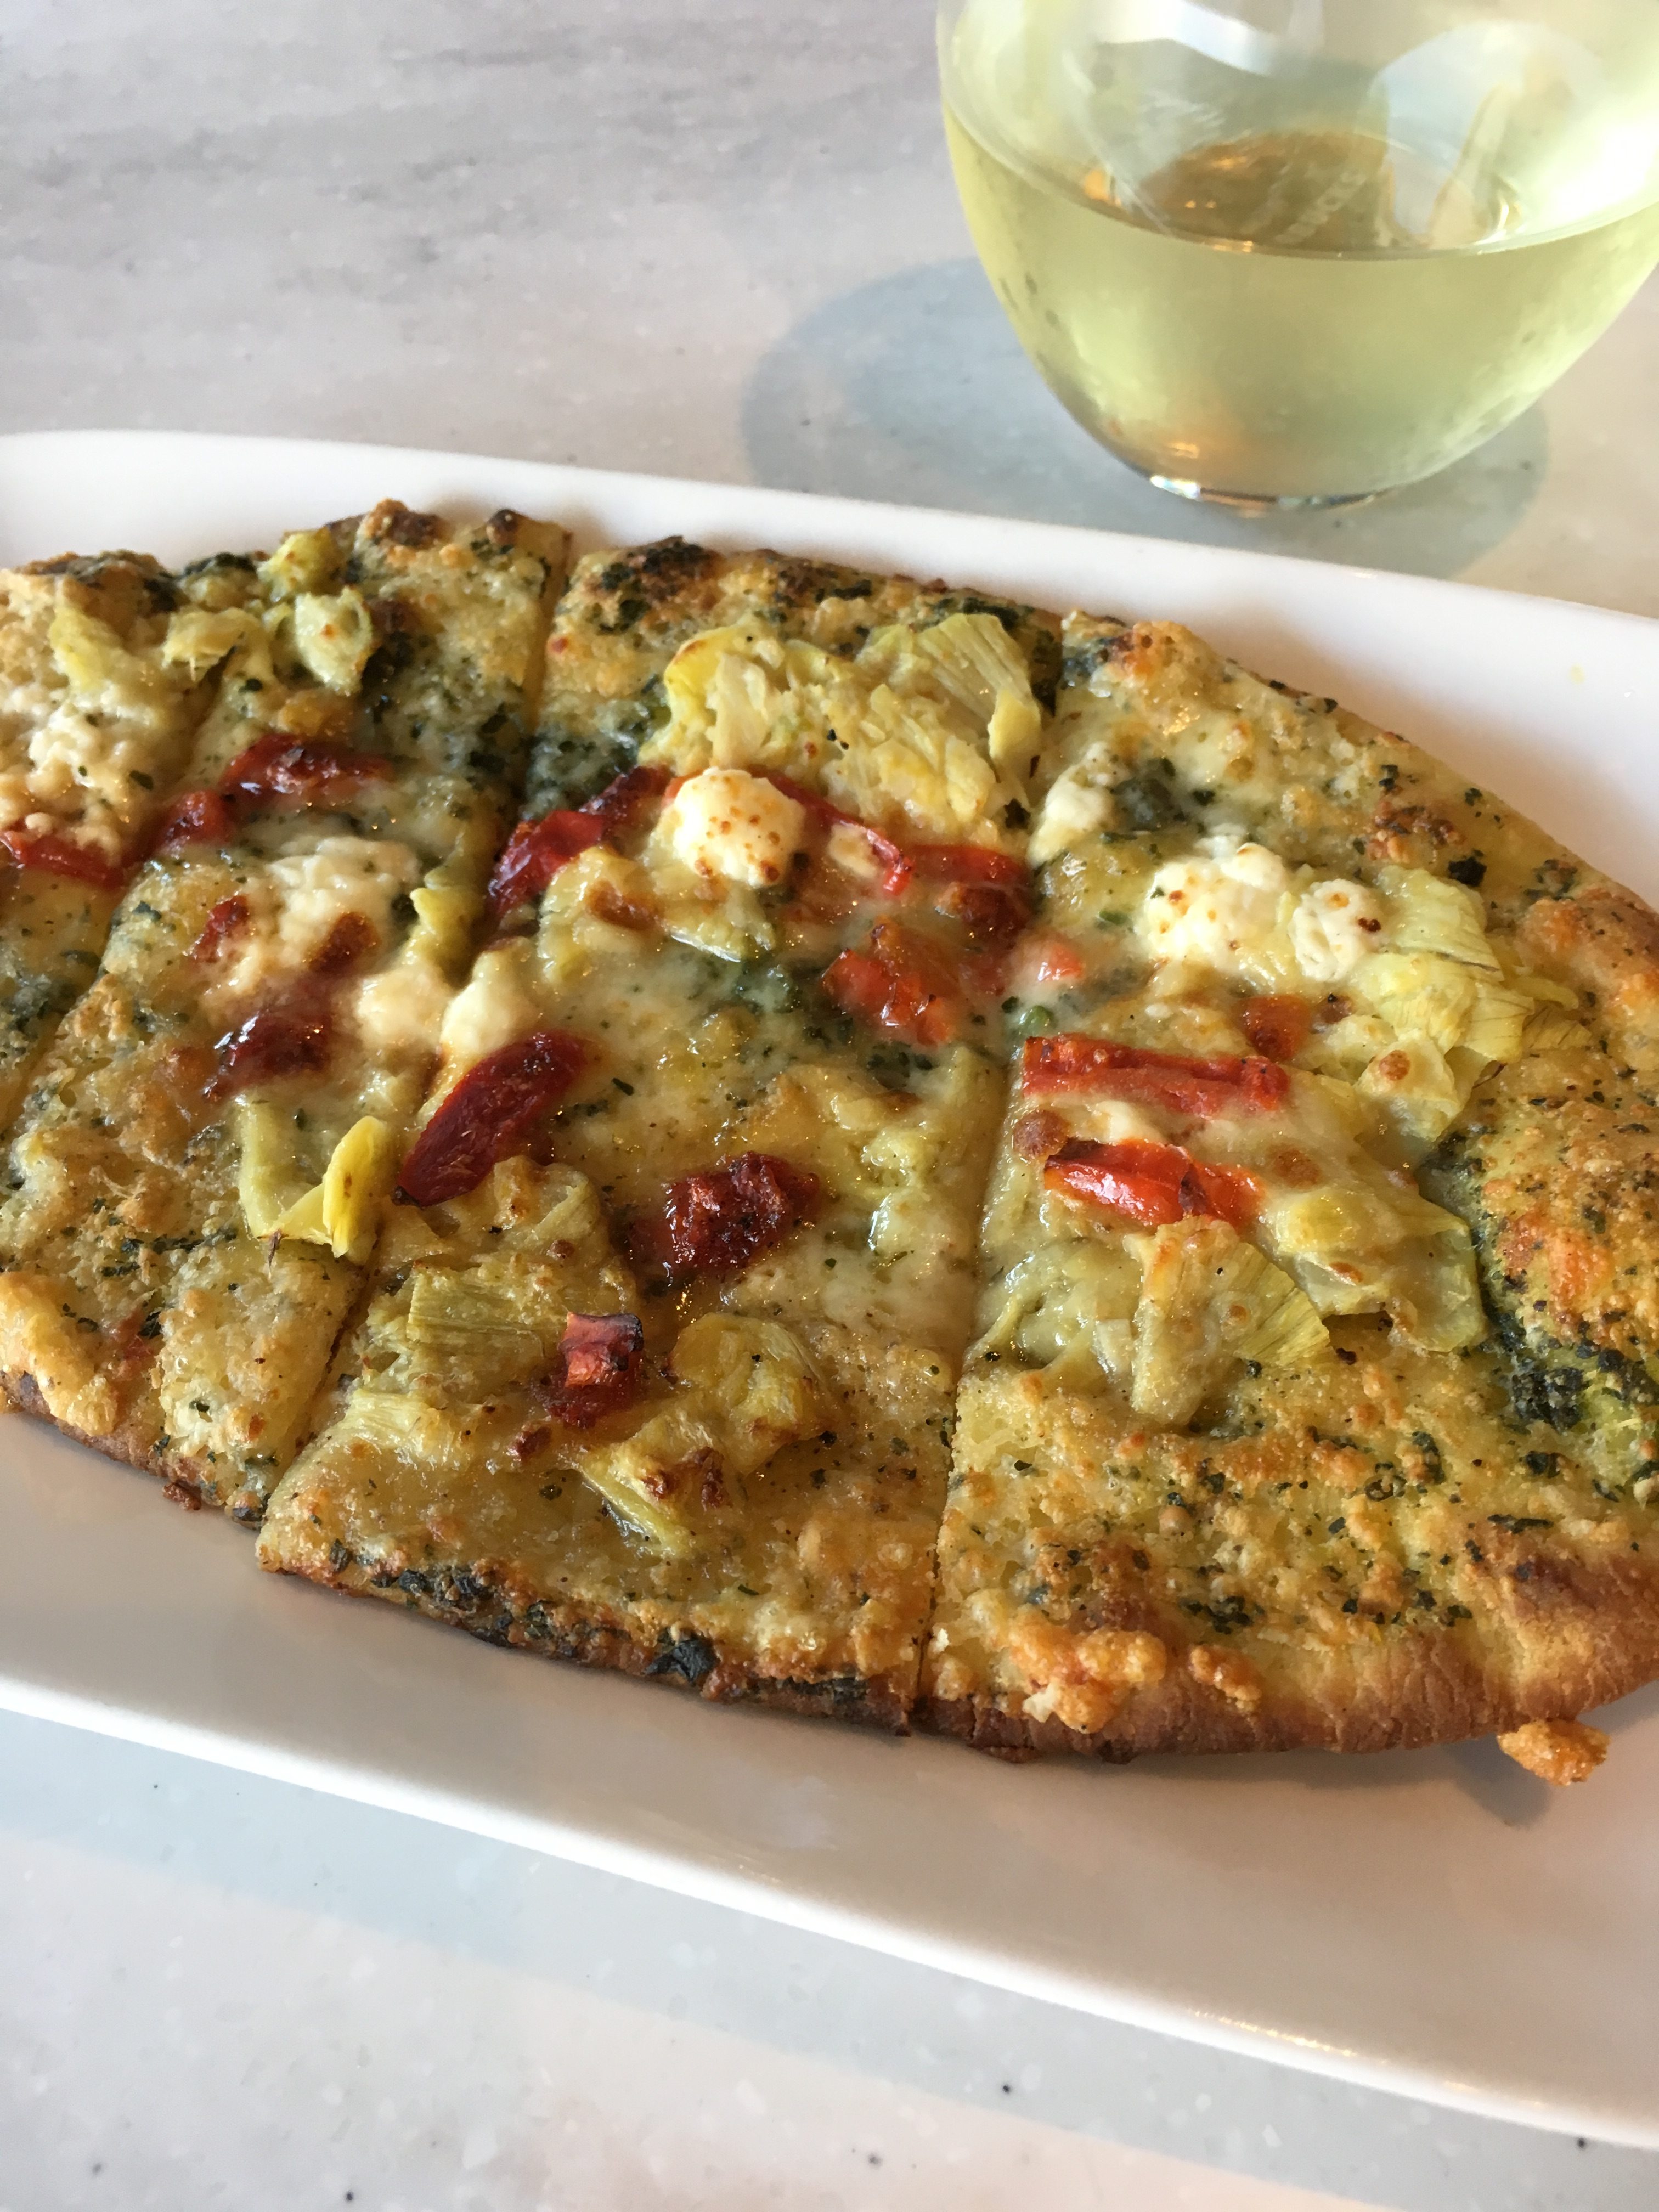 Starbucks Artichoke Goat Cheese Flatbread